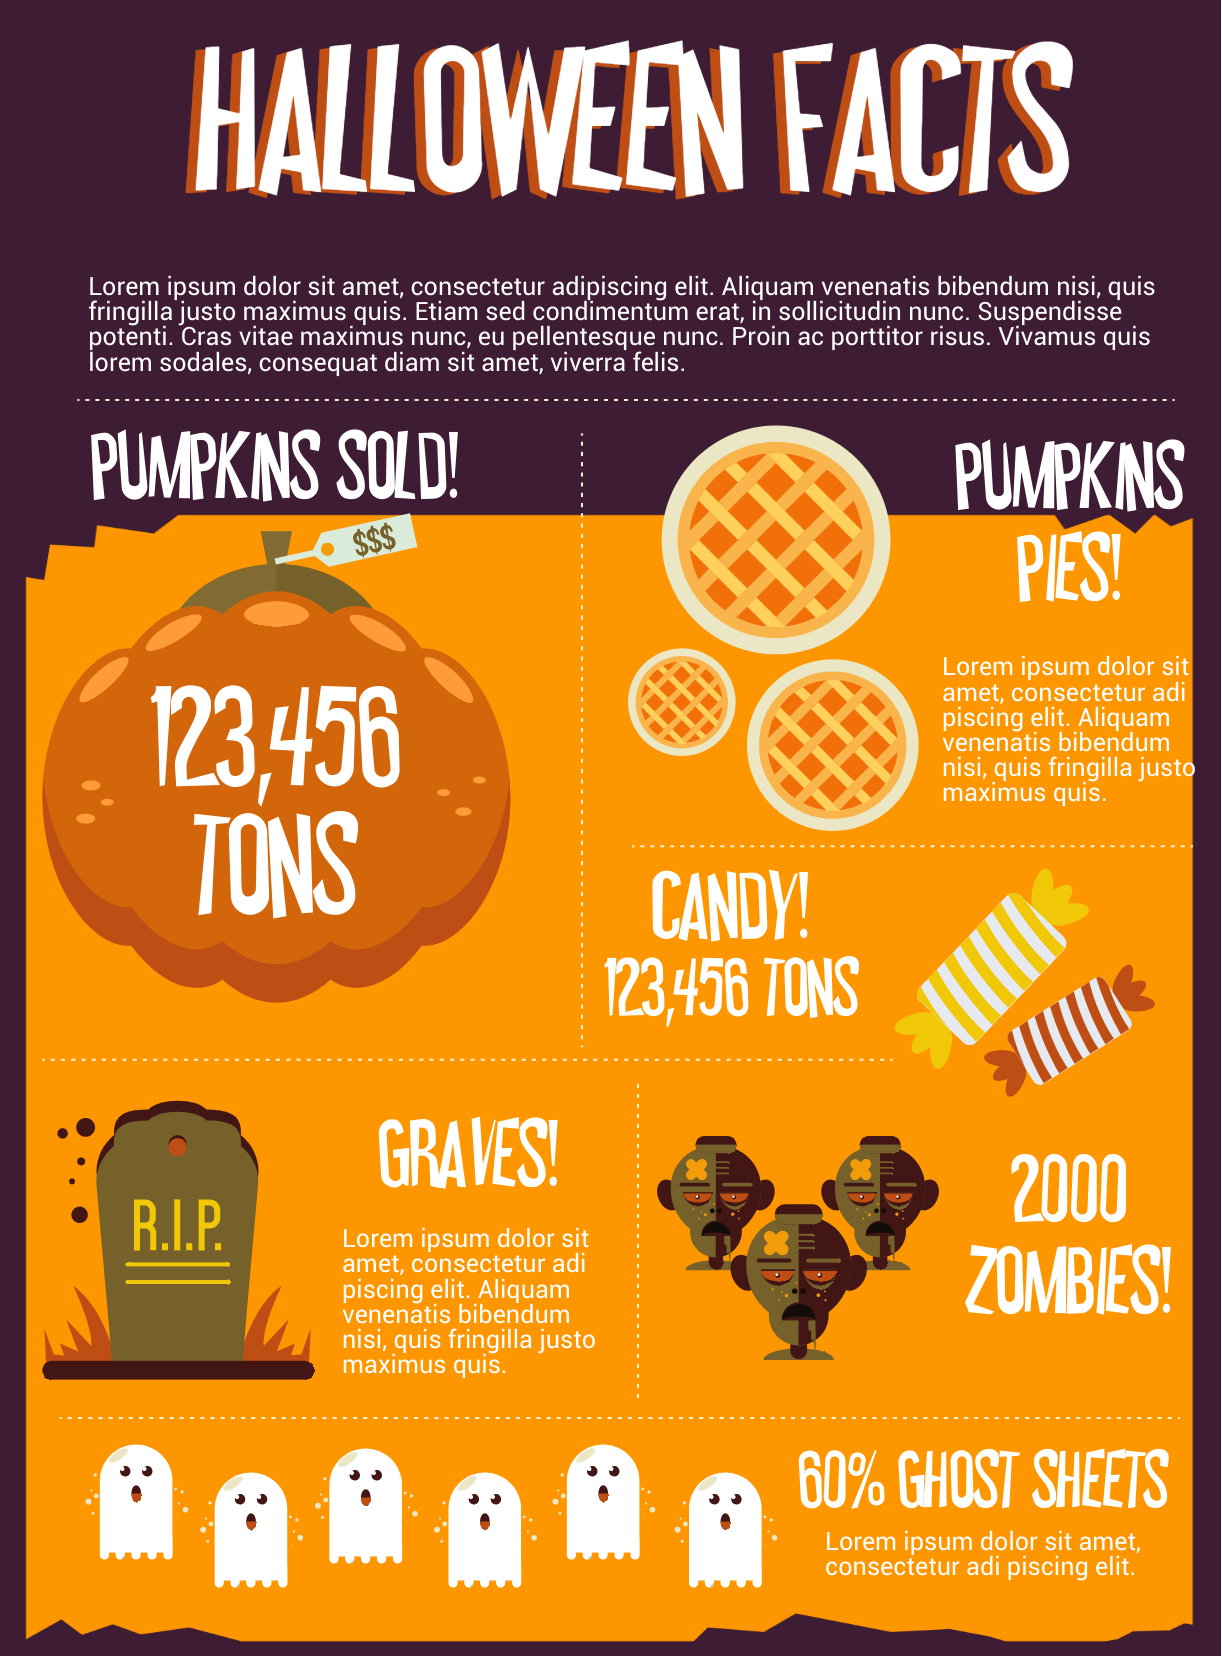 Infographic template with pumpkin, grave, and zombie icons